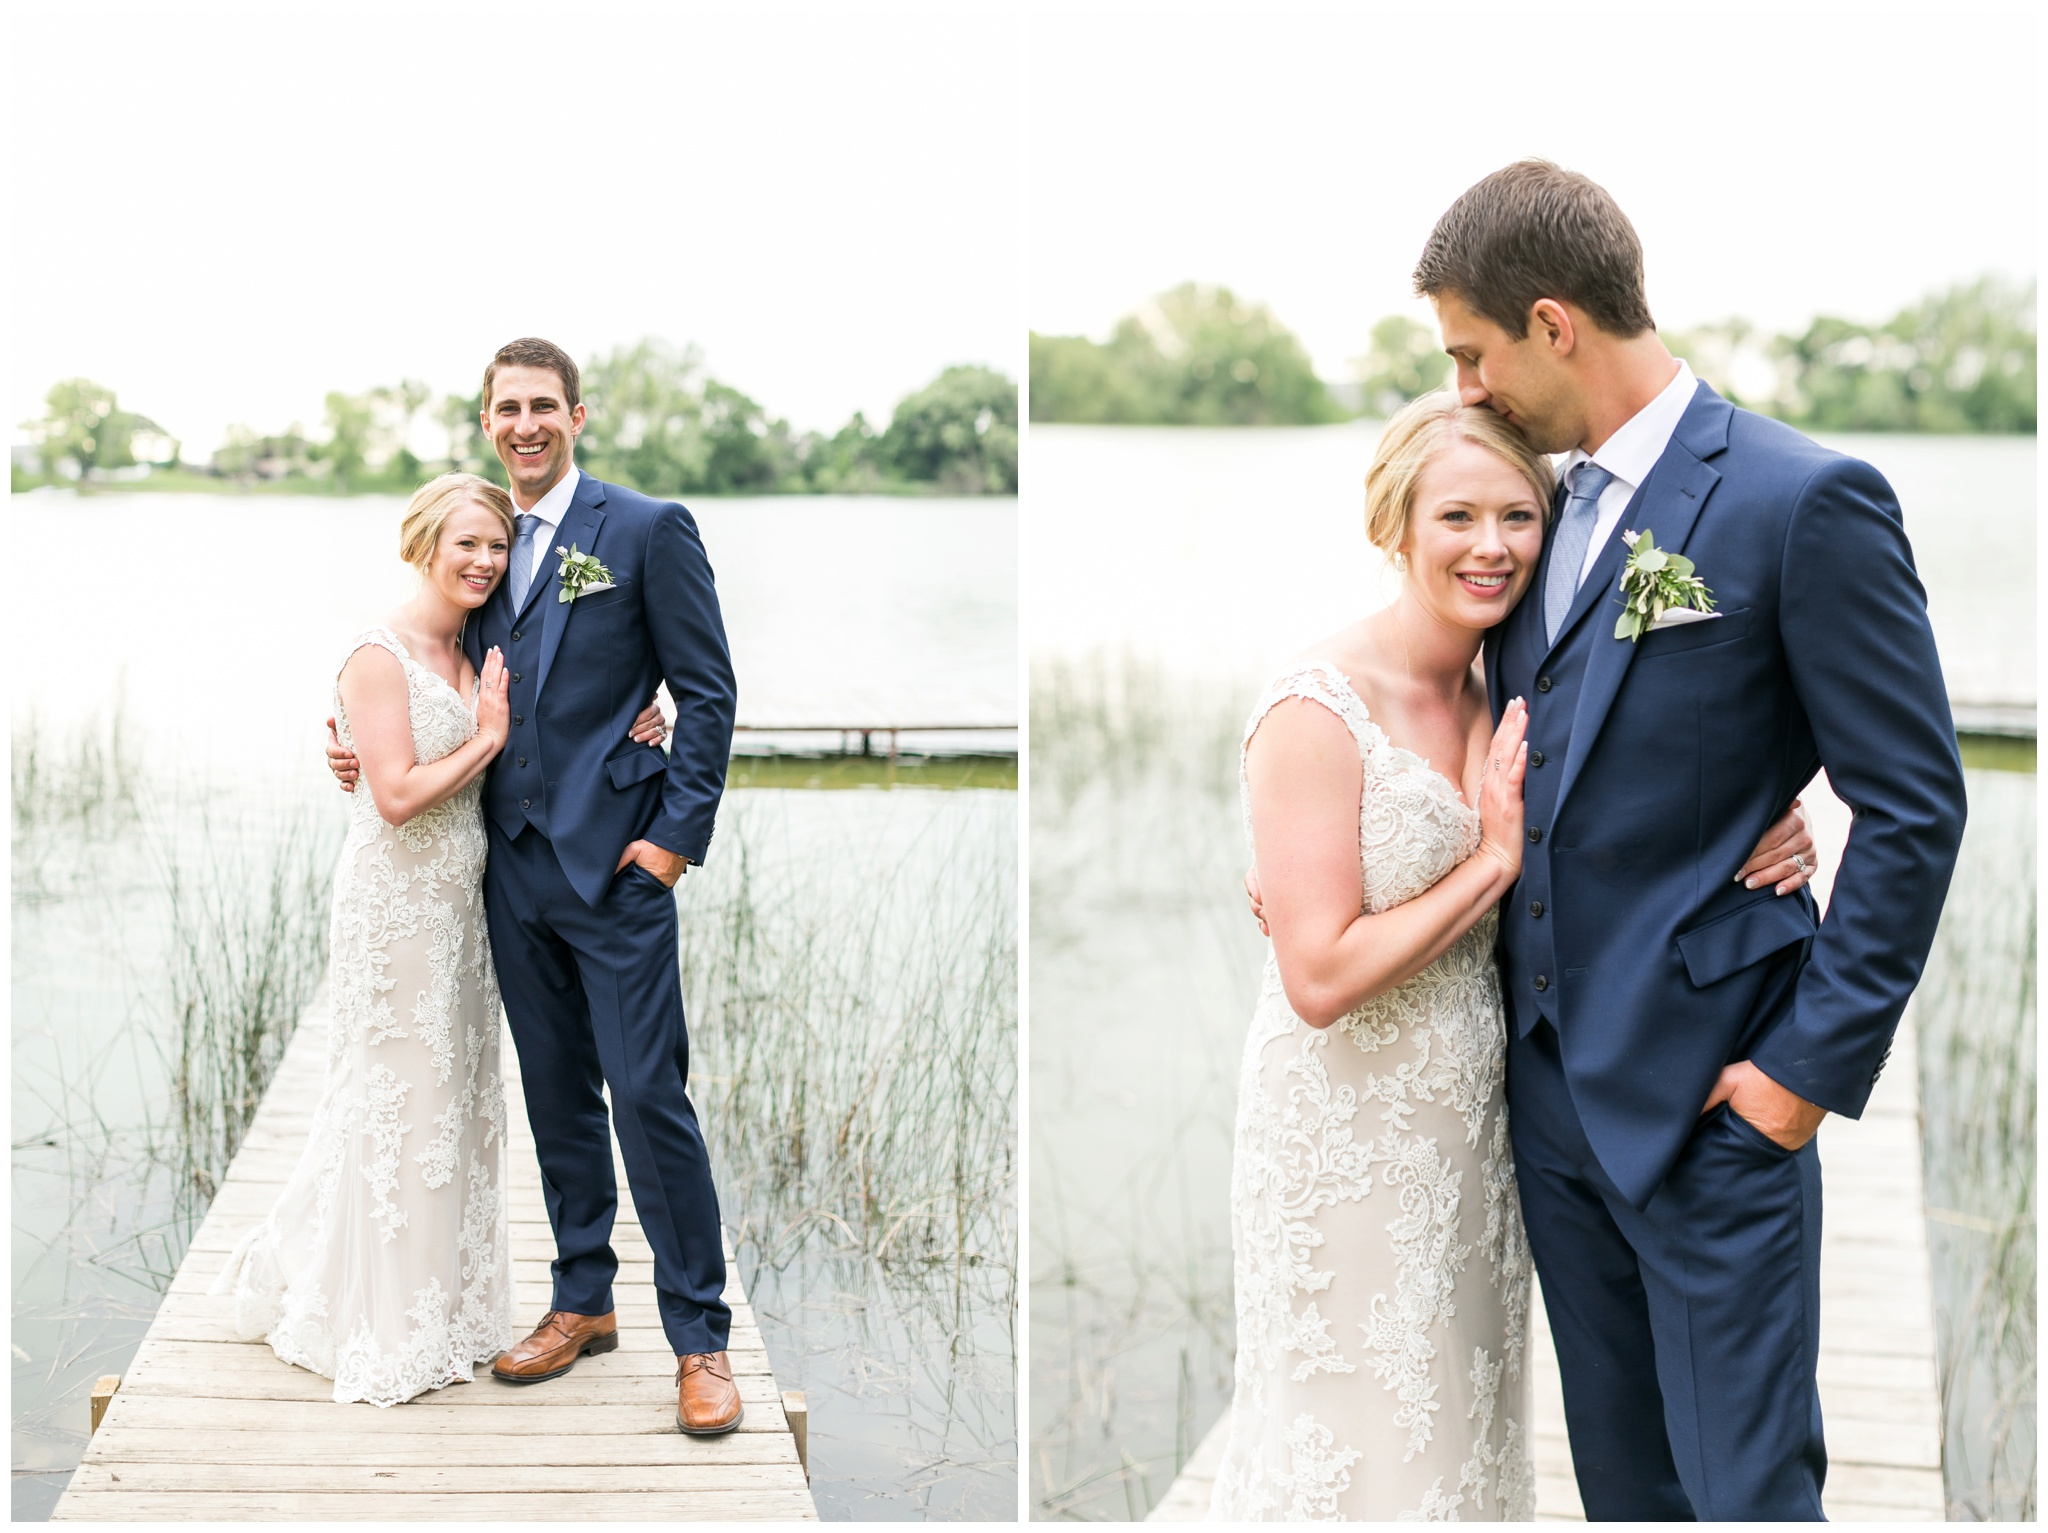 private_estate_wedding_stoughton_wisconsin_wedding_caynay_photo_3880.jpg